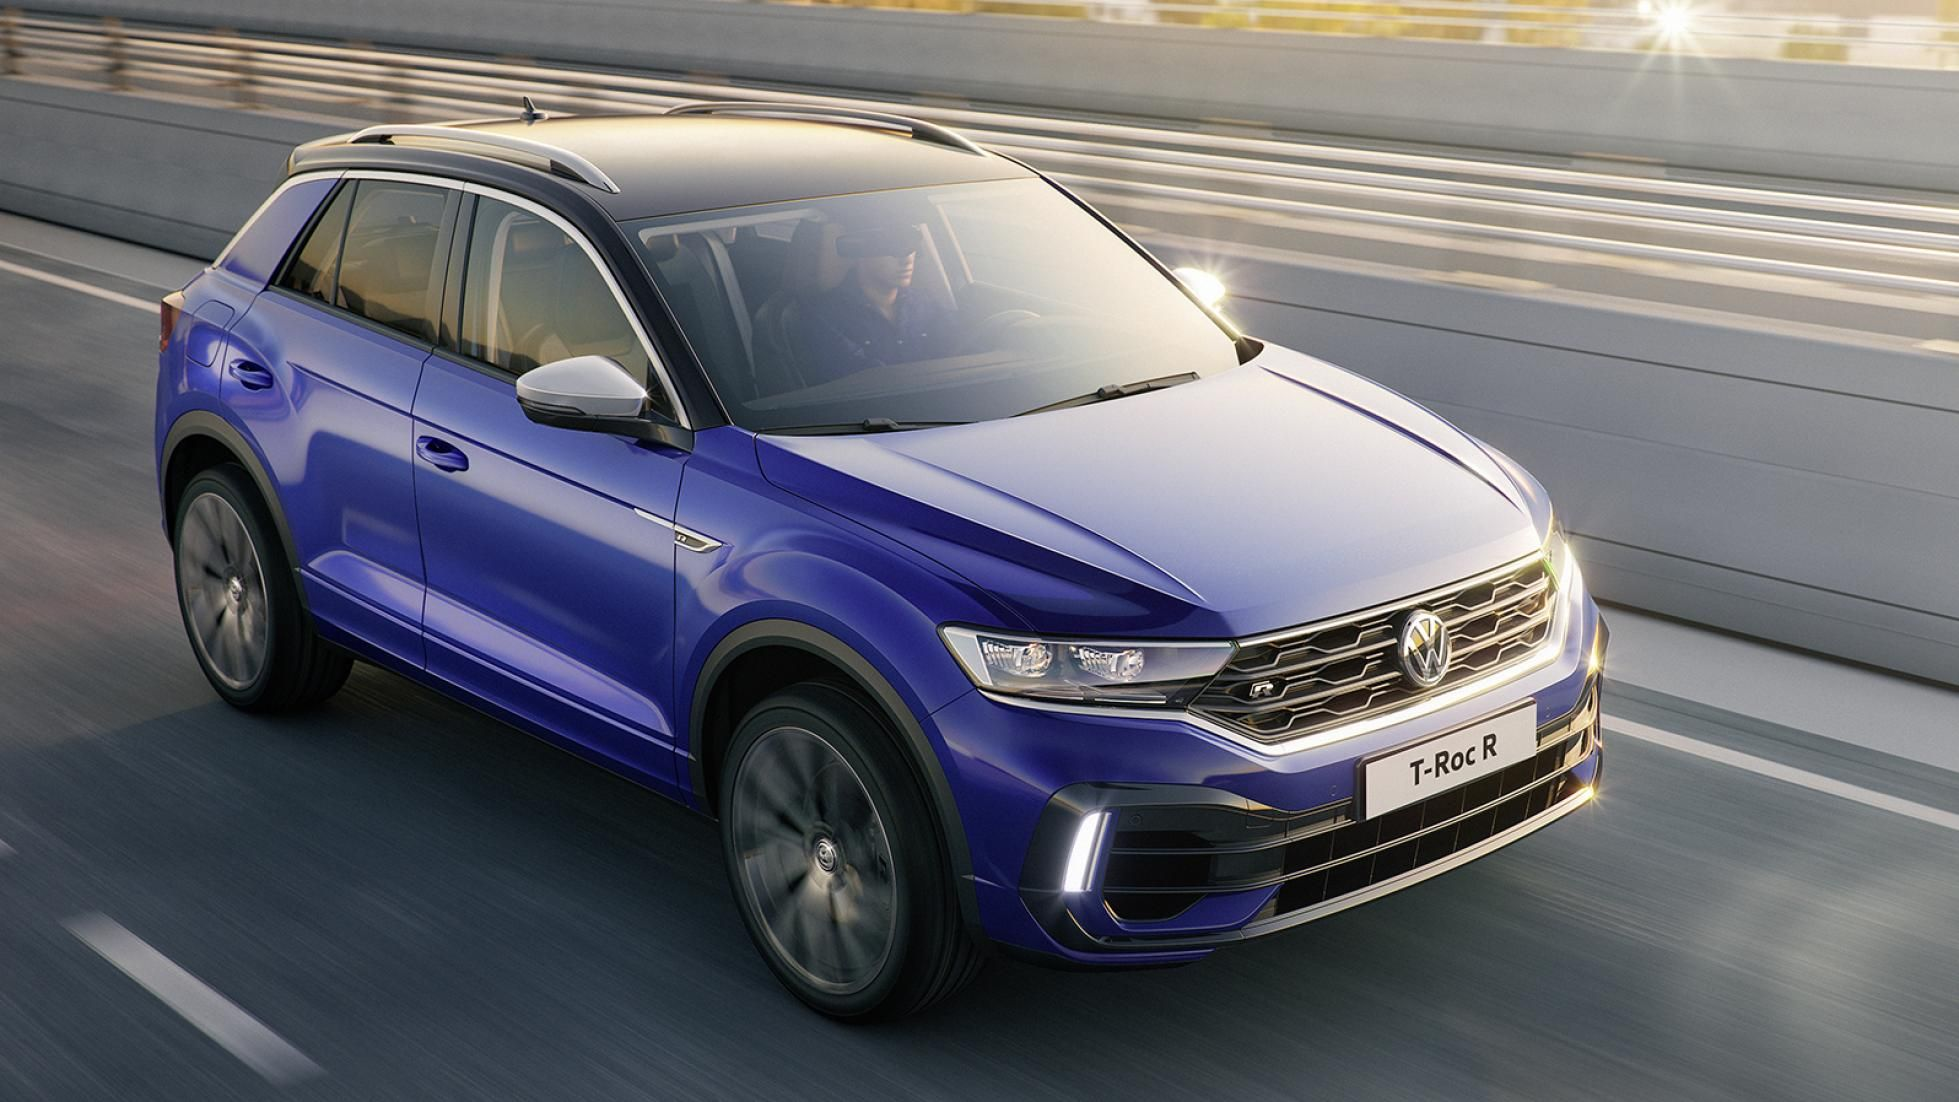 The Vw T Roc R Might Make The Golf Gti Feel Insecure